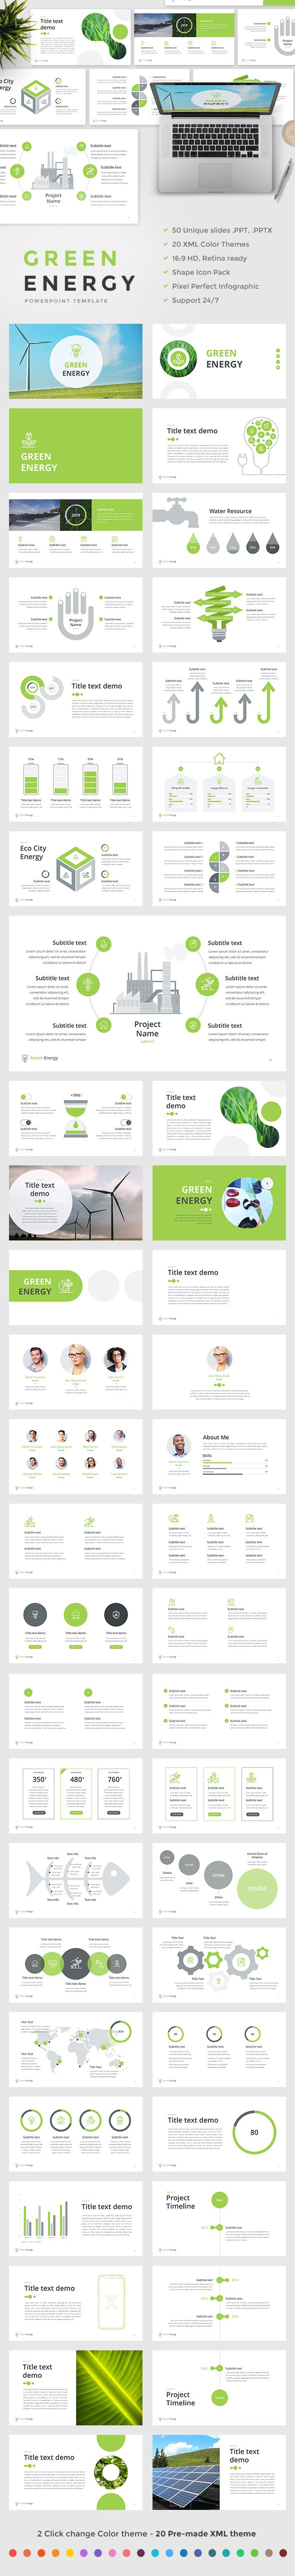 Green energy powerpoint template apresentao green energy powerpoint template nature powerpoint templates toneelgroepblik Image collections